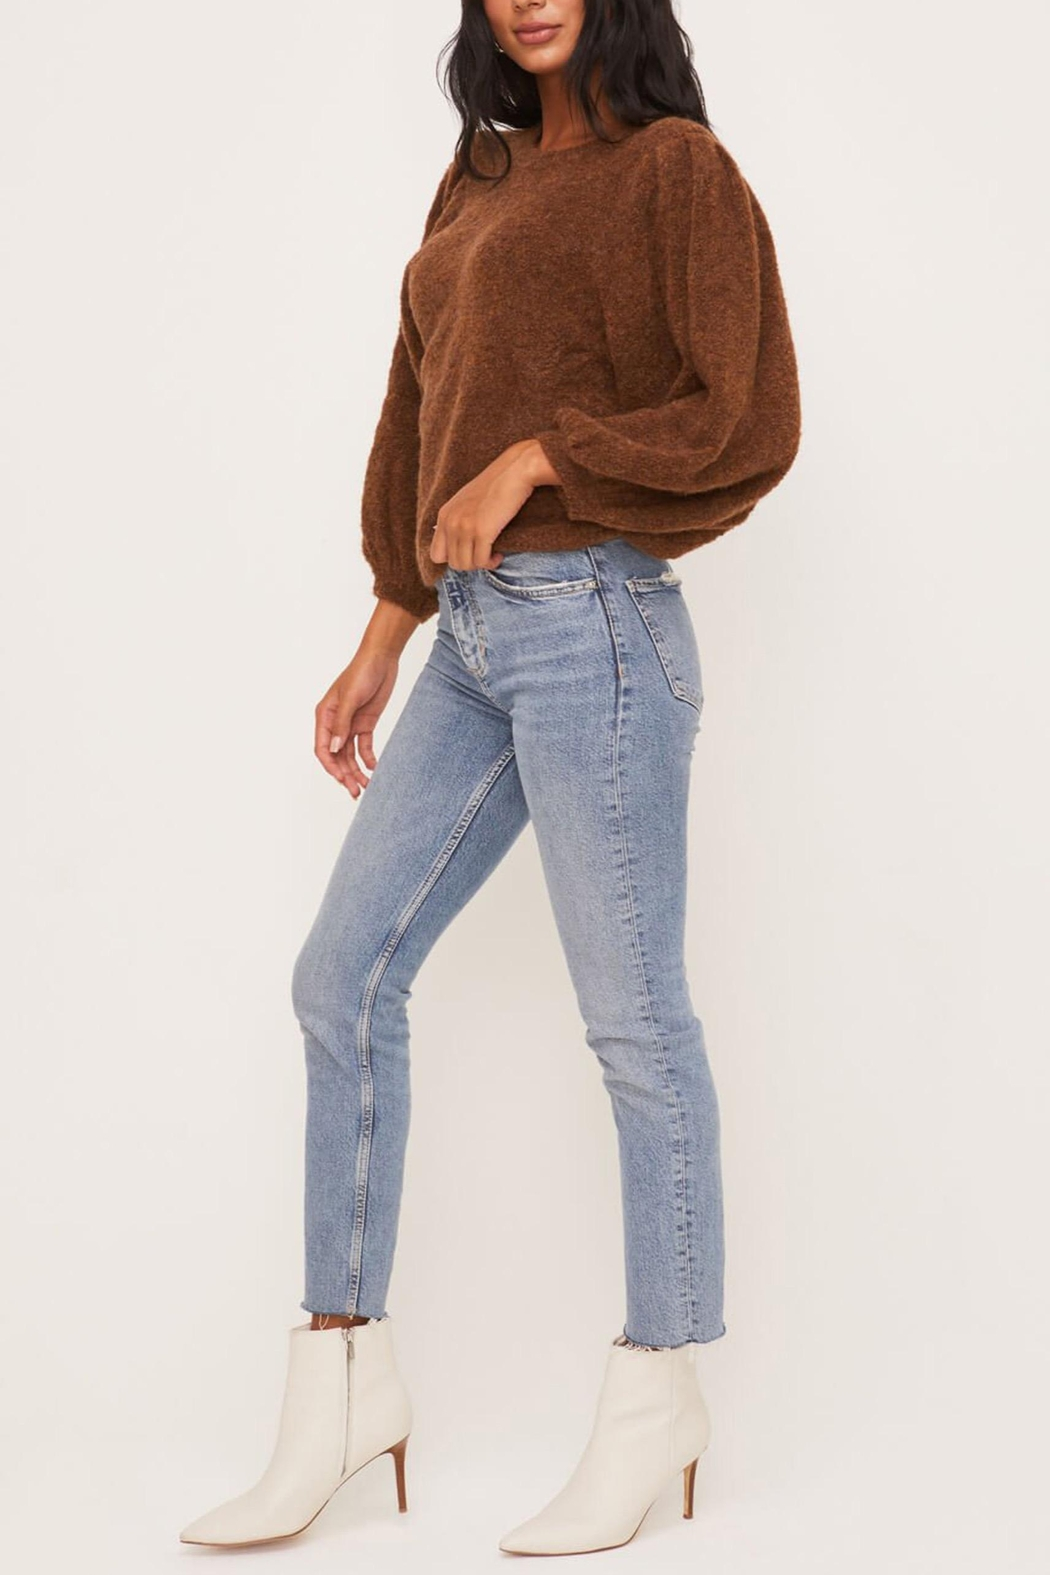 Lush Clothing  Brown Balloon-Sleeve Sweater - Back Cropped Image